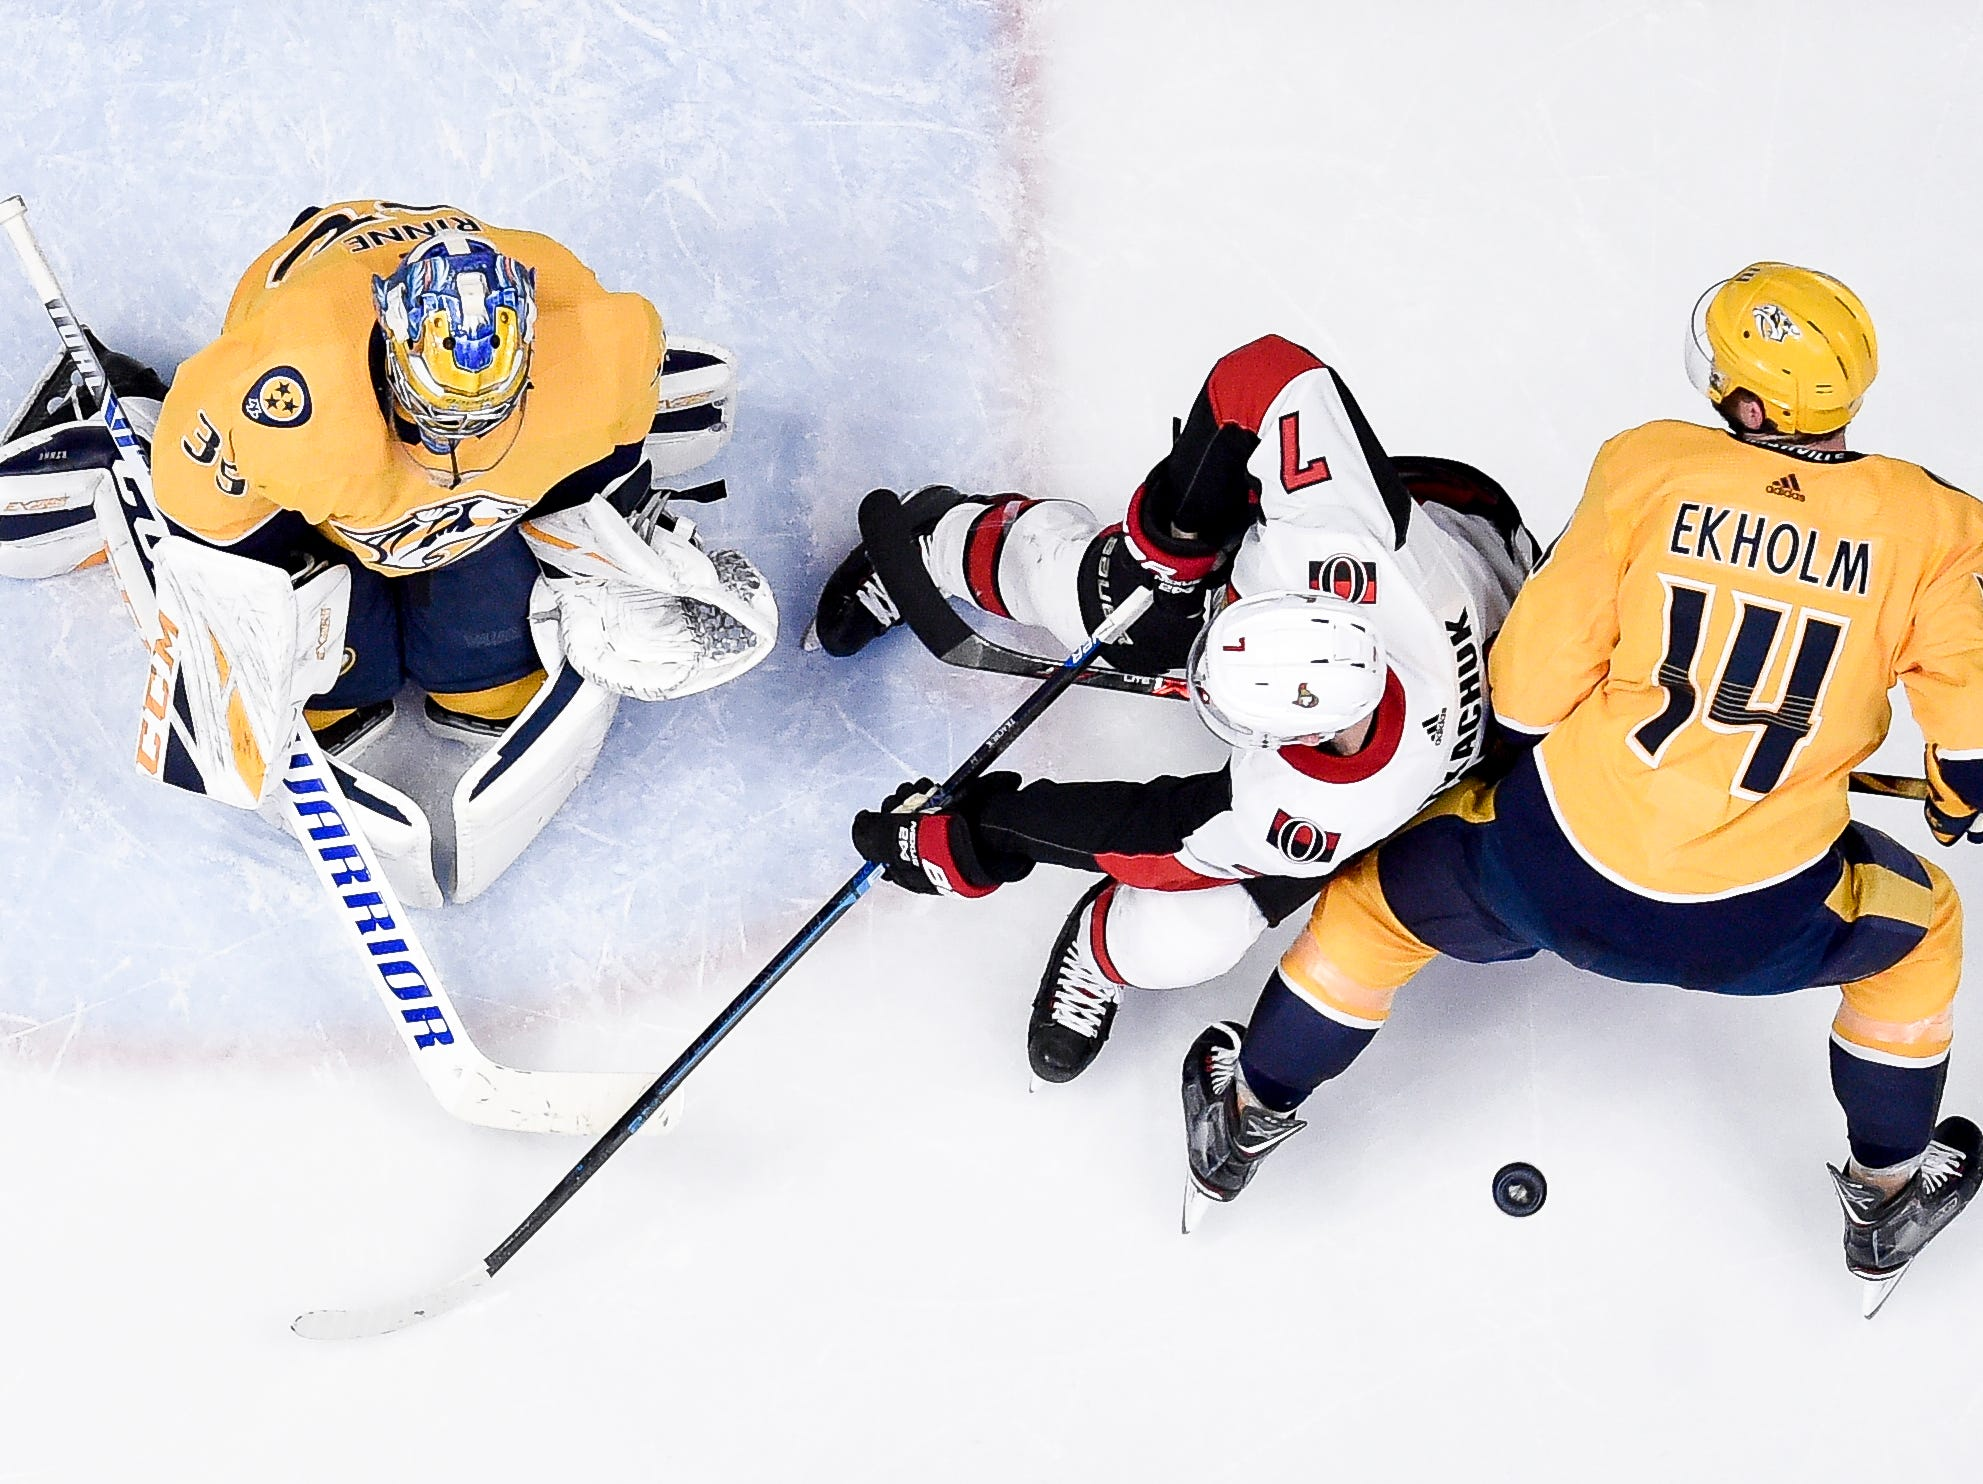 Nashville Predators goaltender Pekka Rinne (35) and defenseman Mattias Ekholm (14) defend against Ottawa Senators left wing Brady Tkachuk (7) during the third period at Bridgestone Arena in Nashville, Tenn., Tuesday, Dec. 11, 2018.